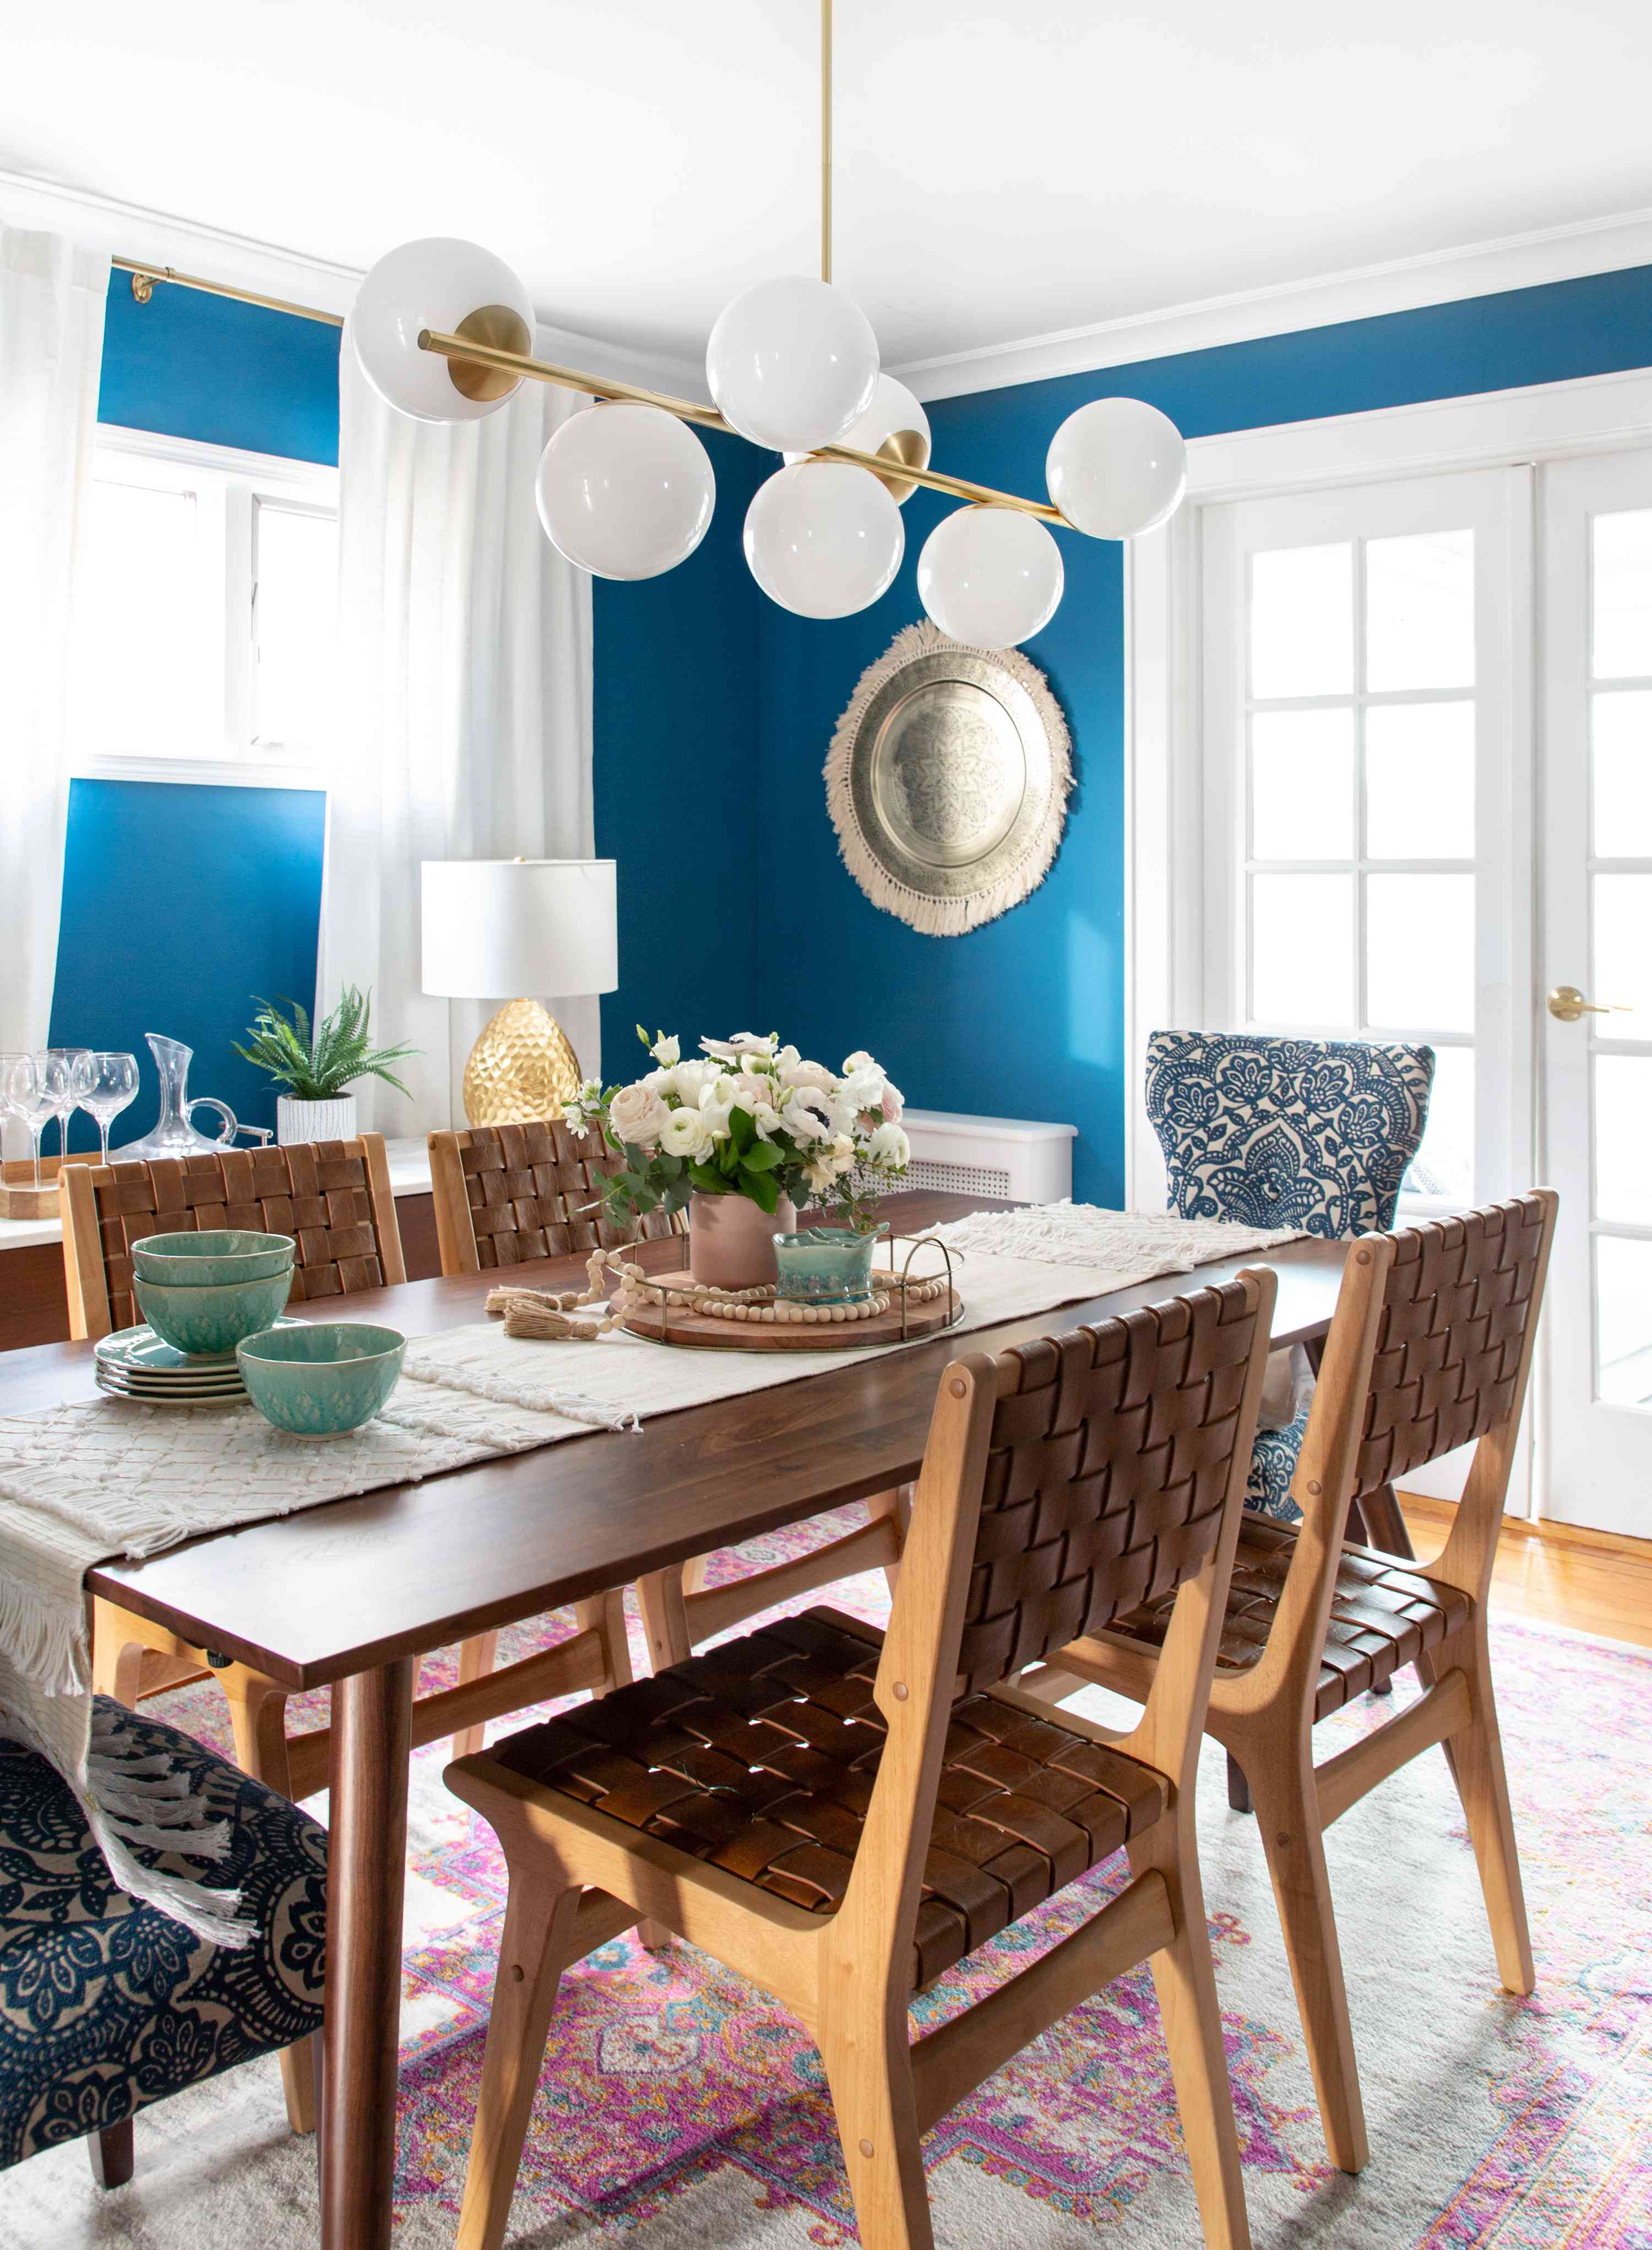 Close up of dining room table and chairs.